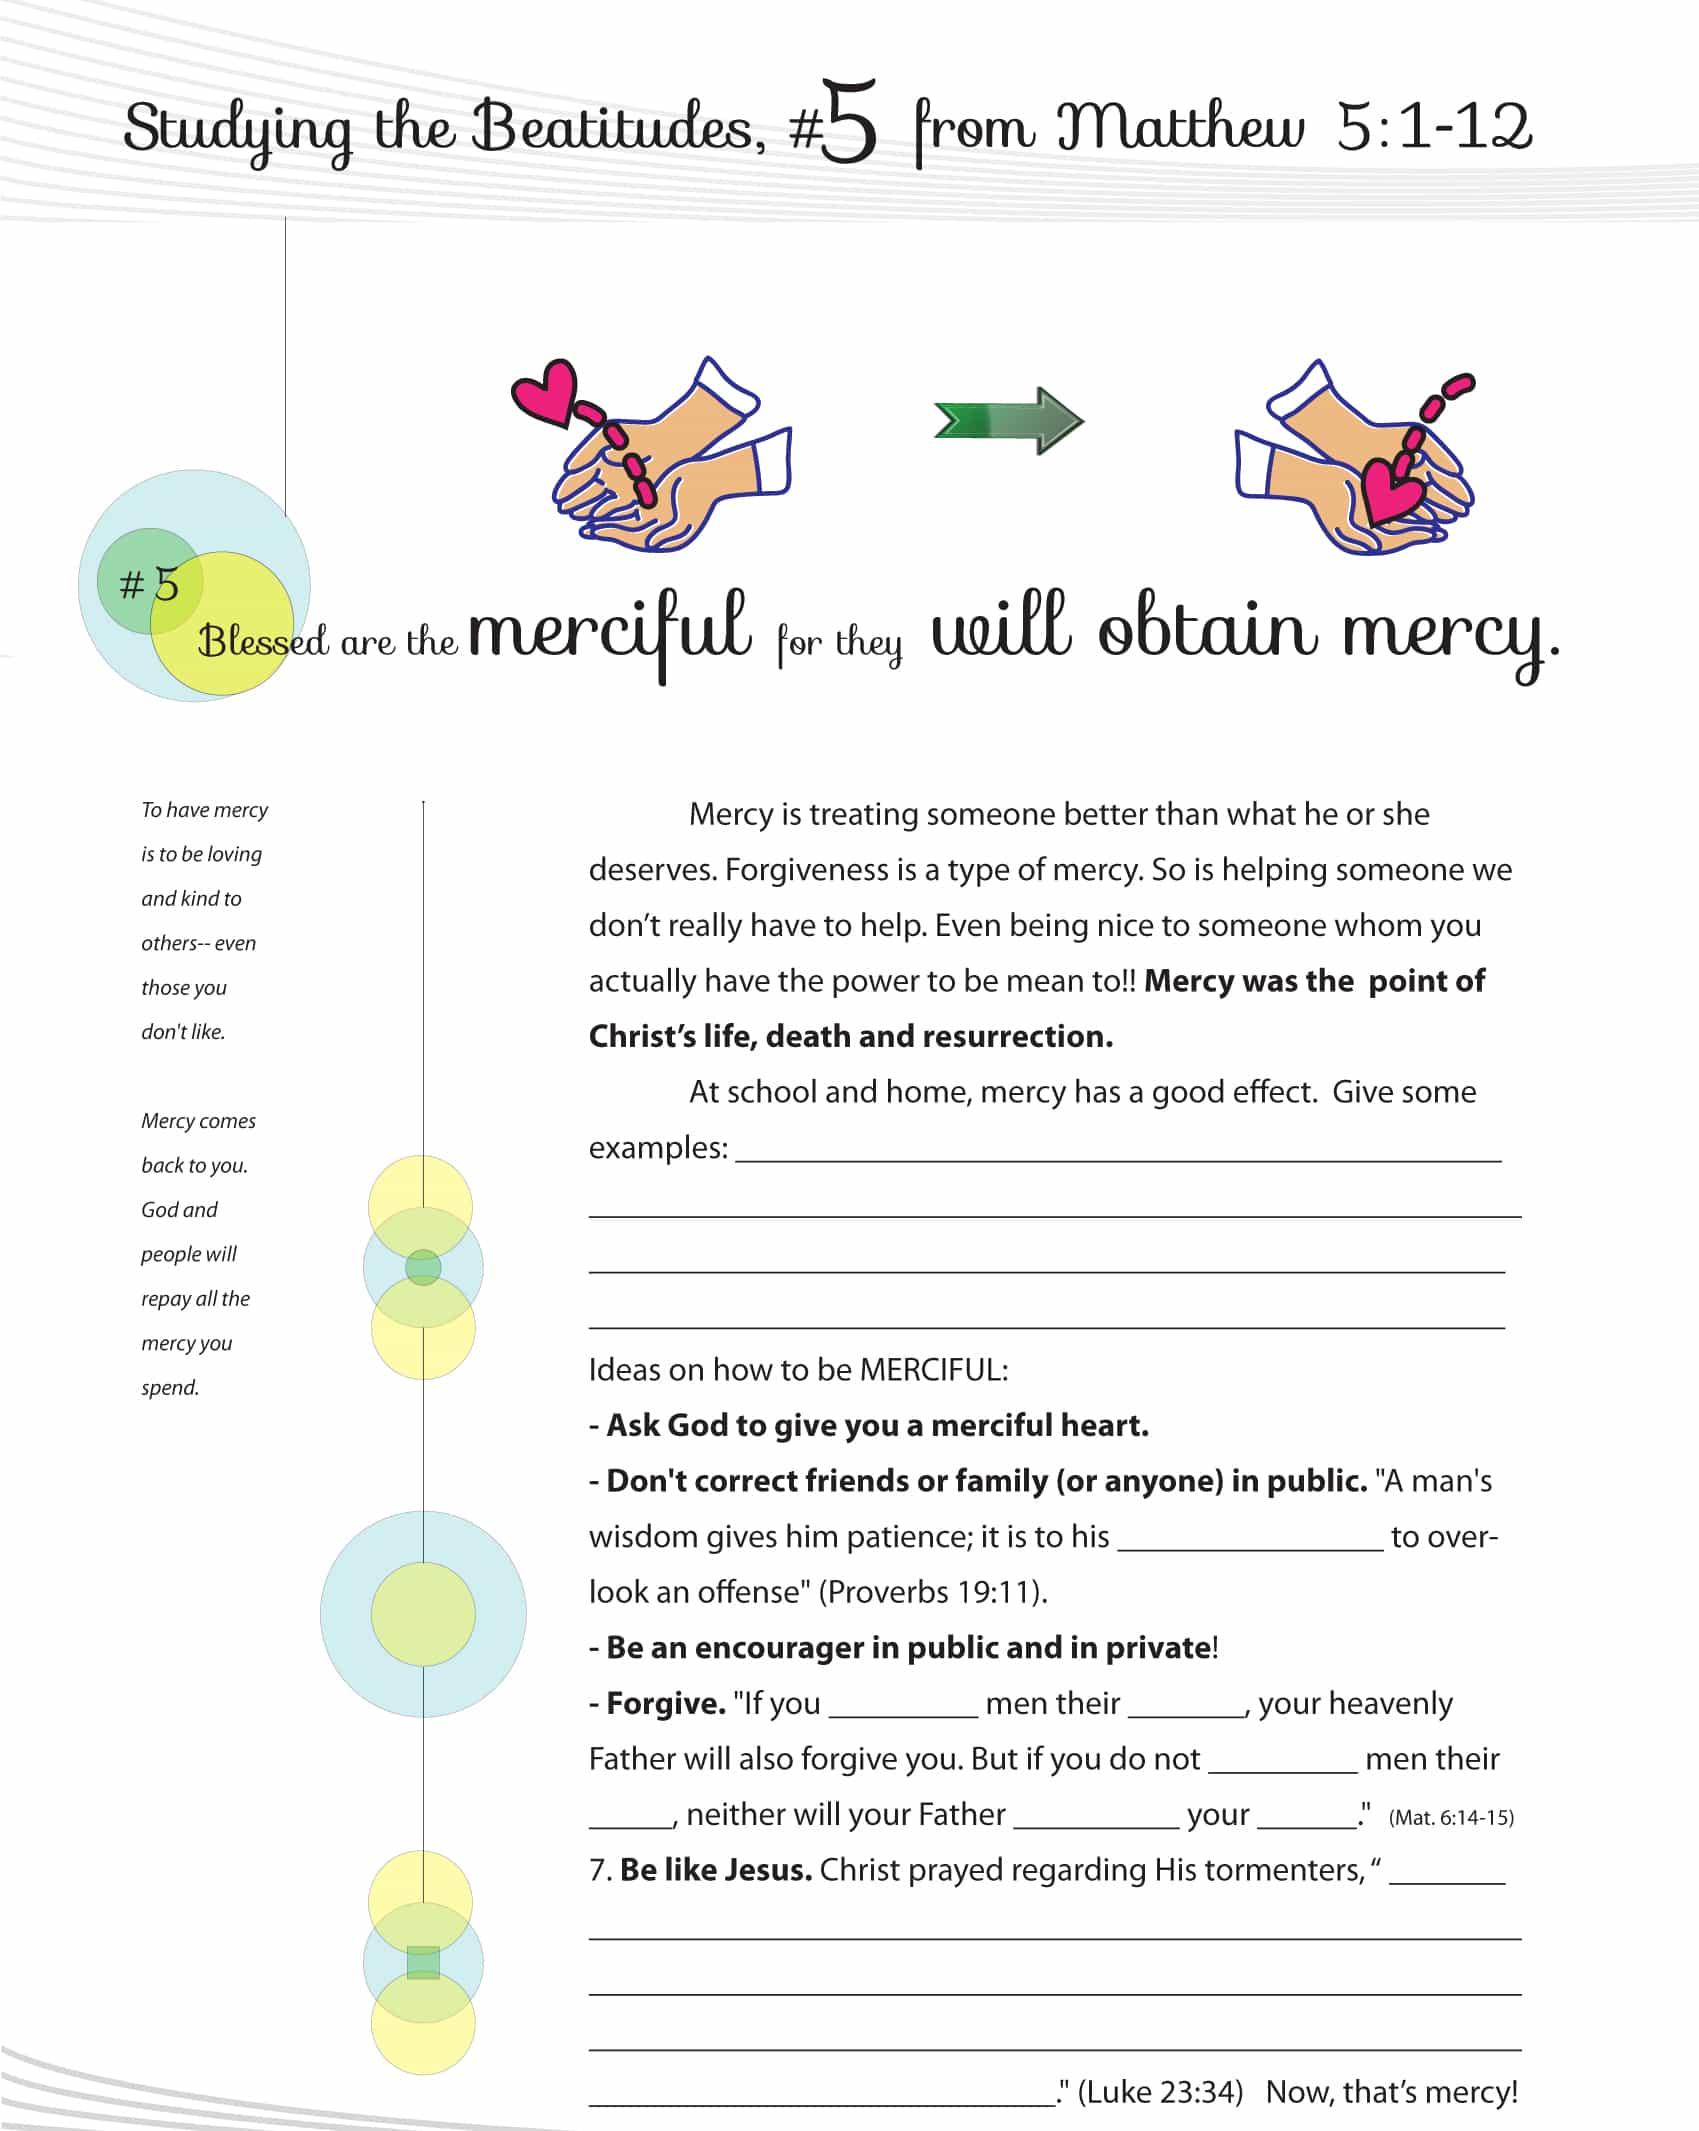 Free Childrens Bible Study Worksheets And Free Kids Church Activities Pages